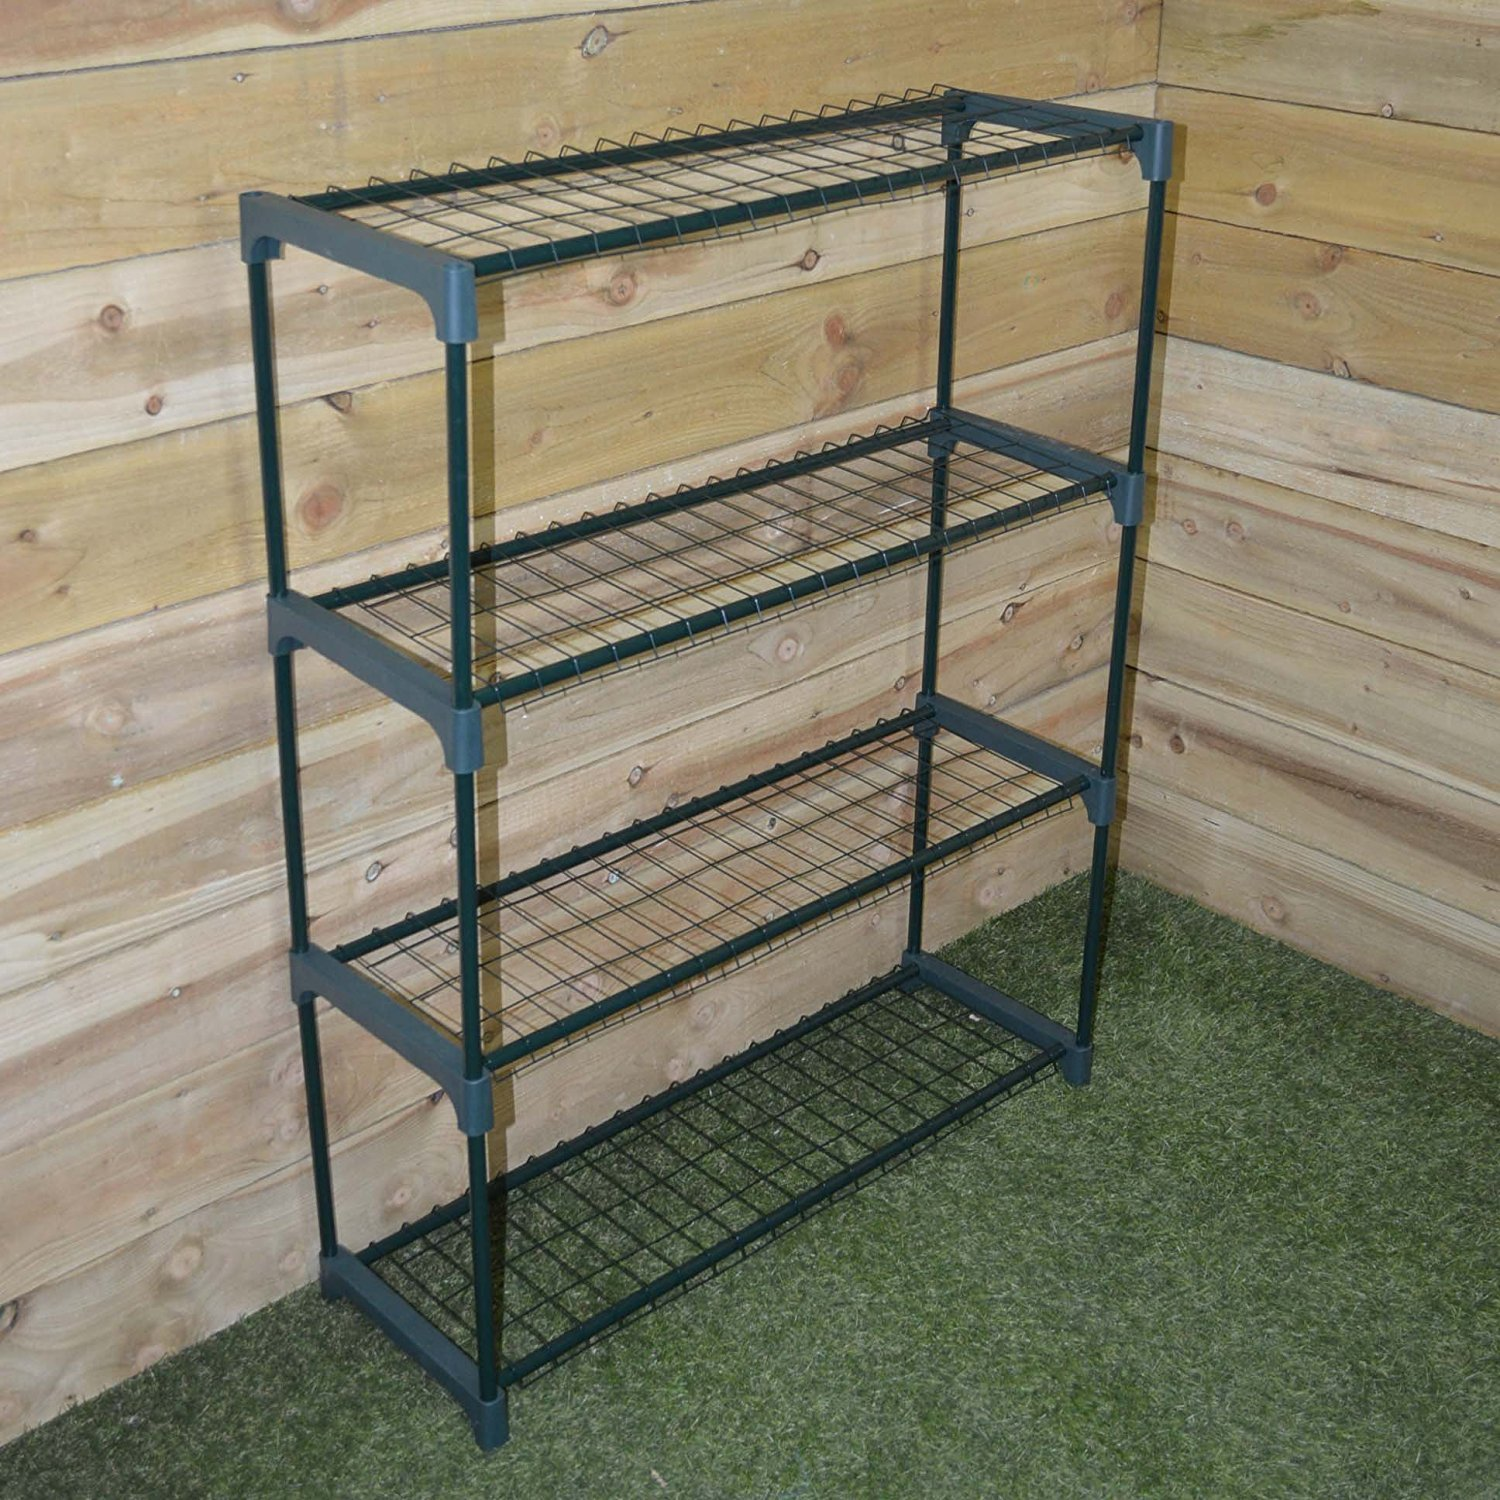 Kingfisher GHSTAGE 4 Shelf Greenhouse Staging - Green King Fisher